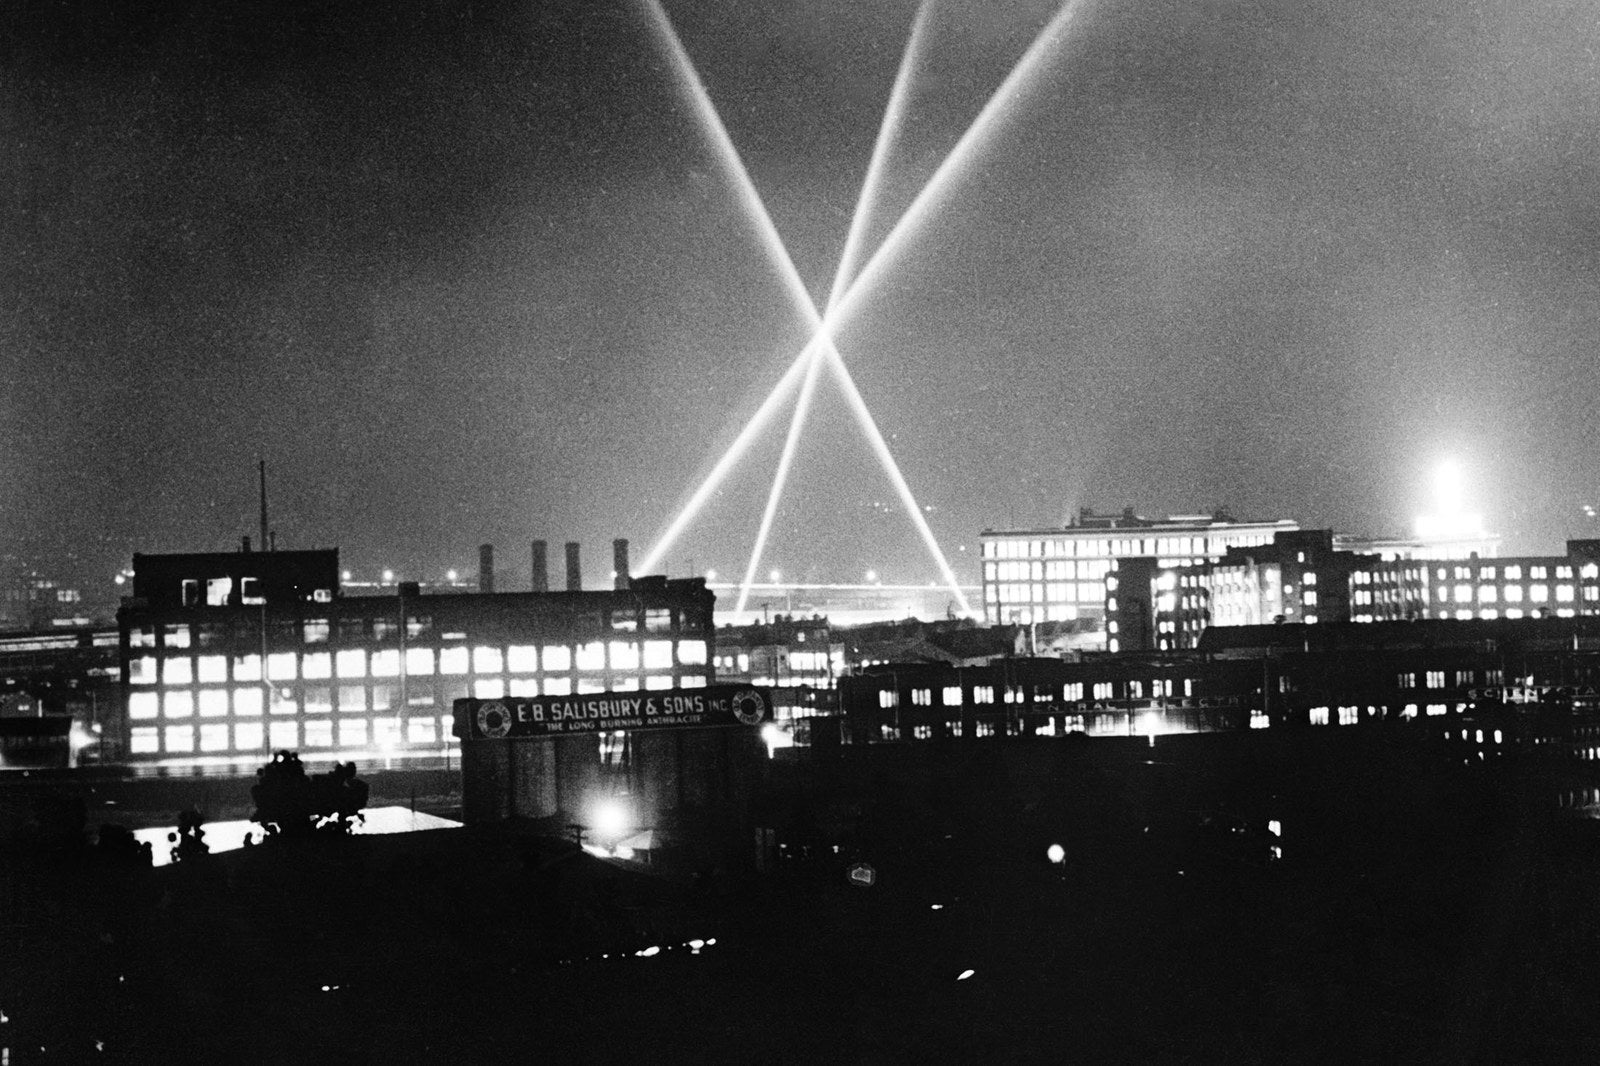 Anti-aircraft searchlights undergo a test in the sky above the General Electric Company at Schenectady, New York, on Dec. 19, 1941.